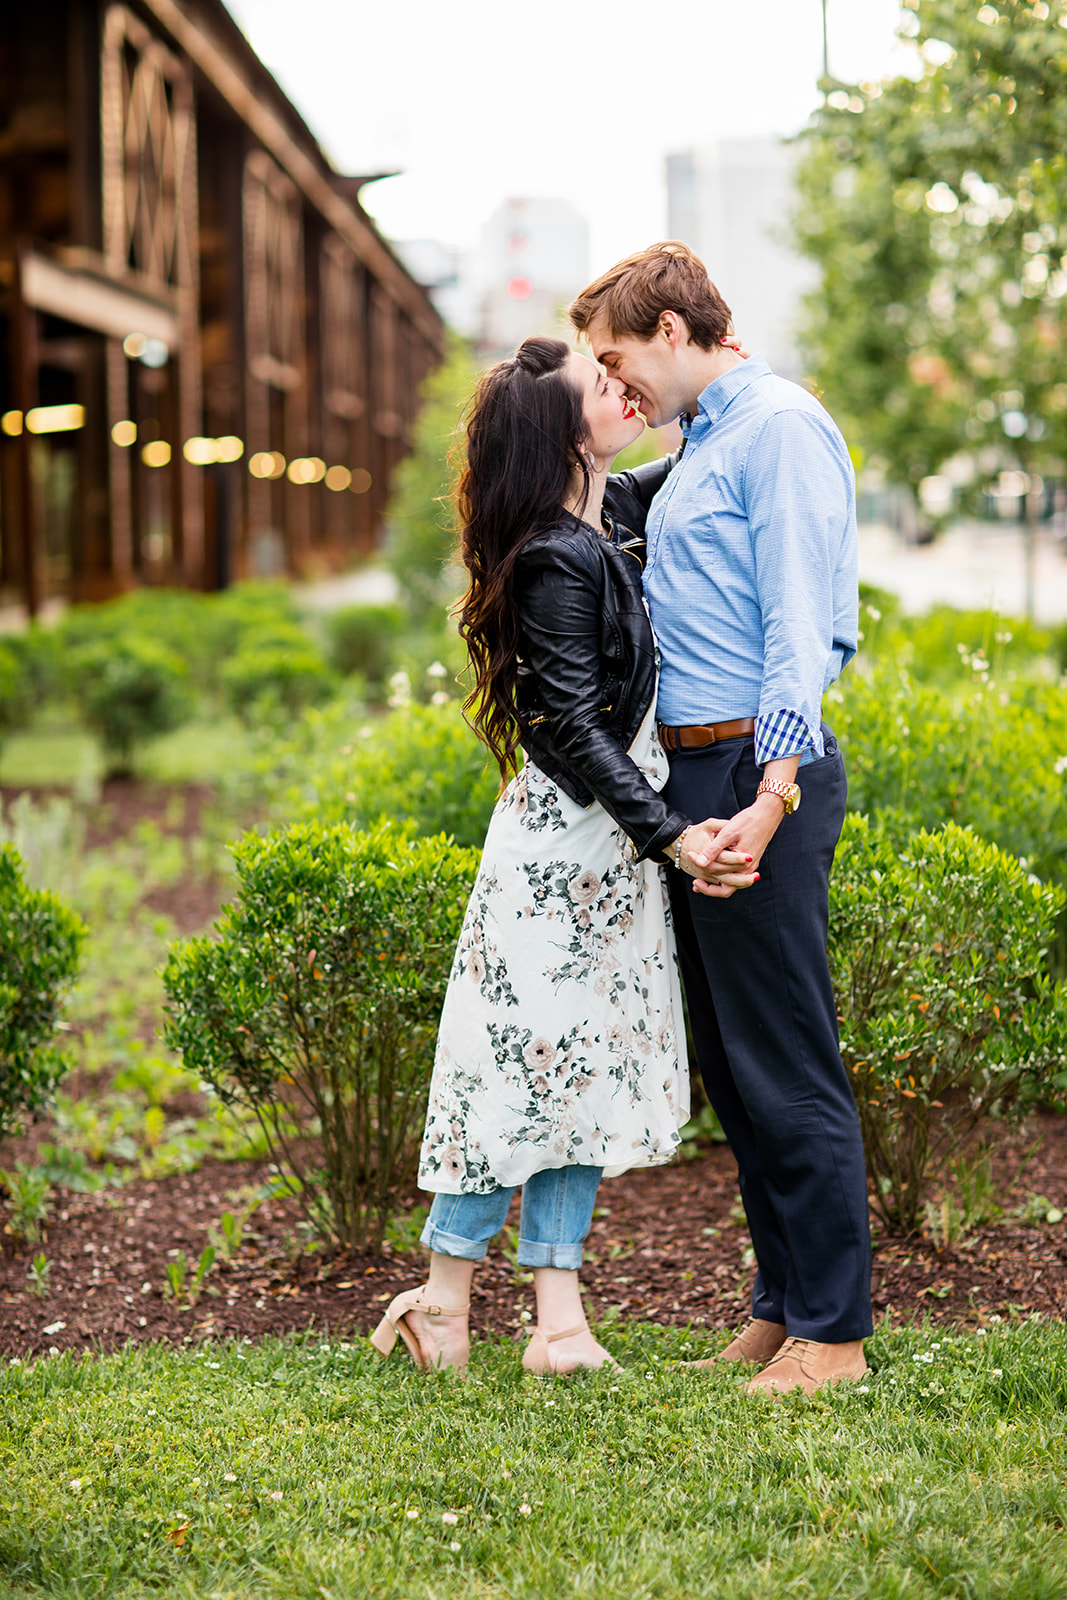 Mallory  Pauls Shockoe Bottom Engagement Shoot - Image Property of www.j-dphoto.com